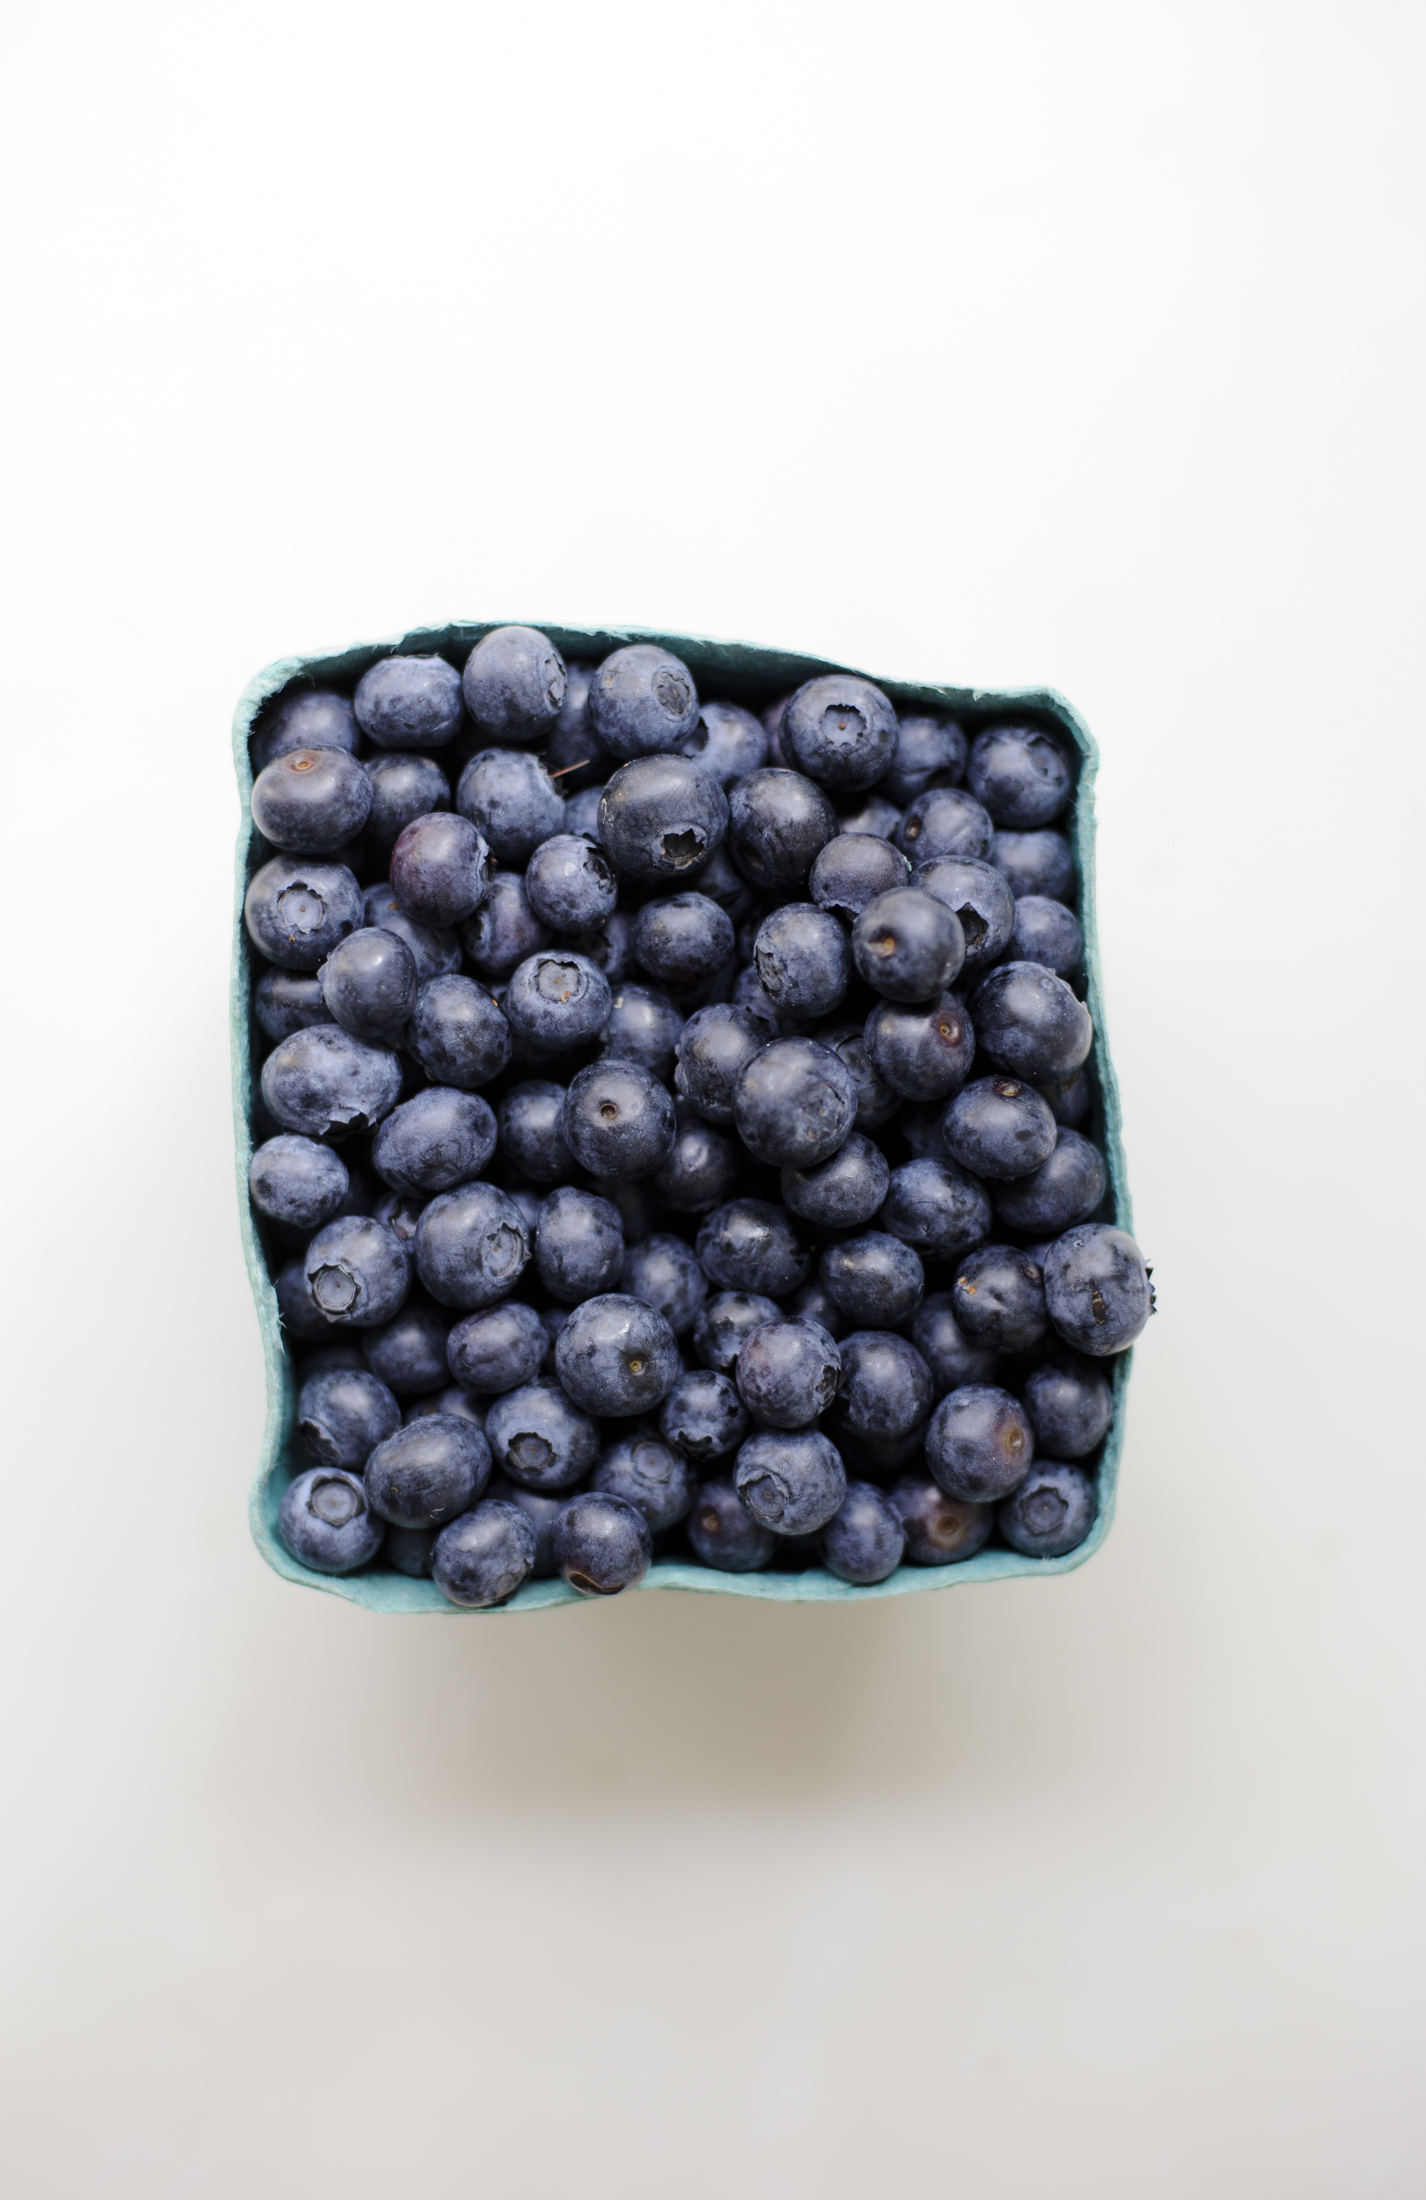 carmen-ladipo_blueberries-1.jpg